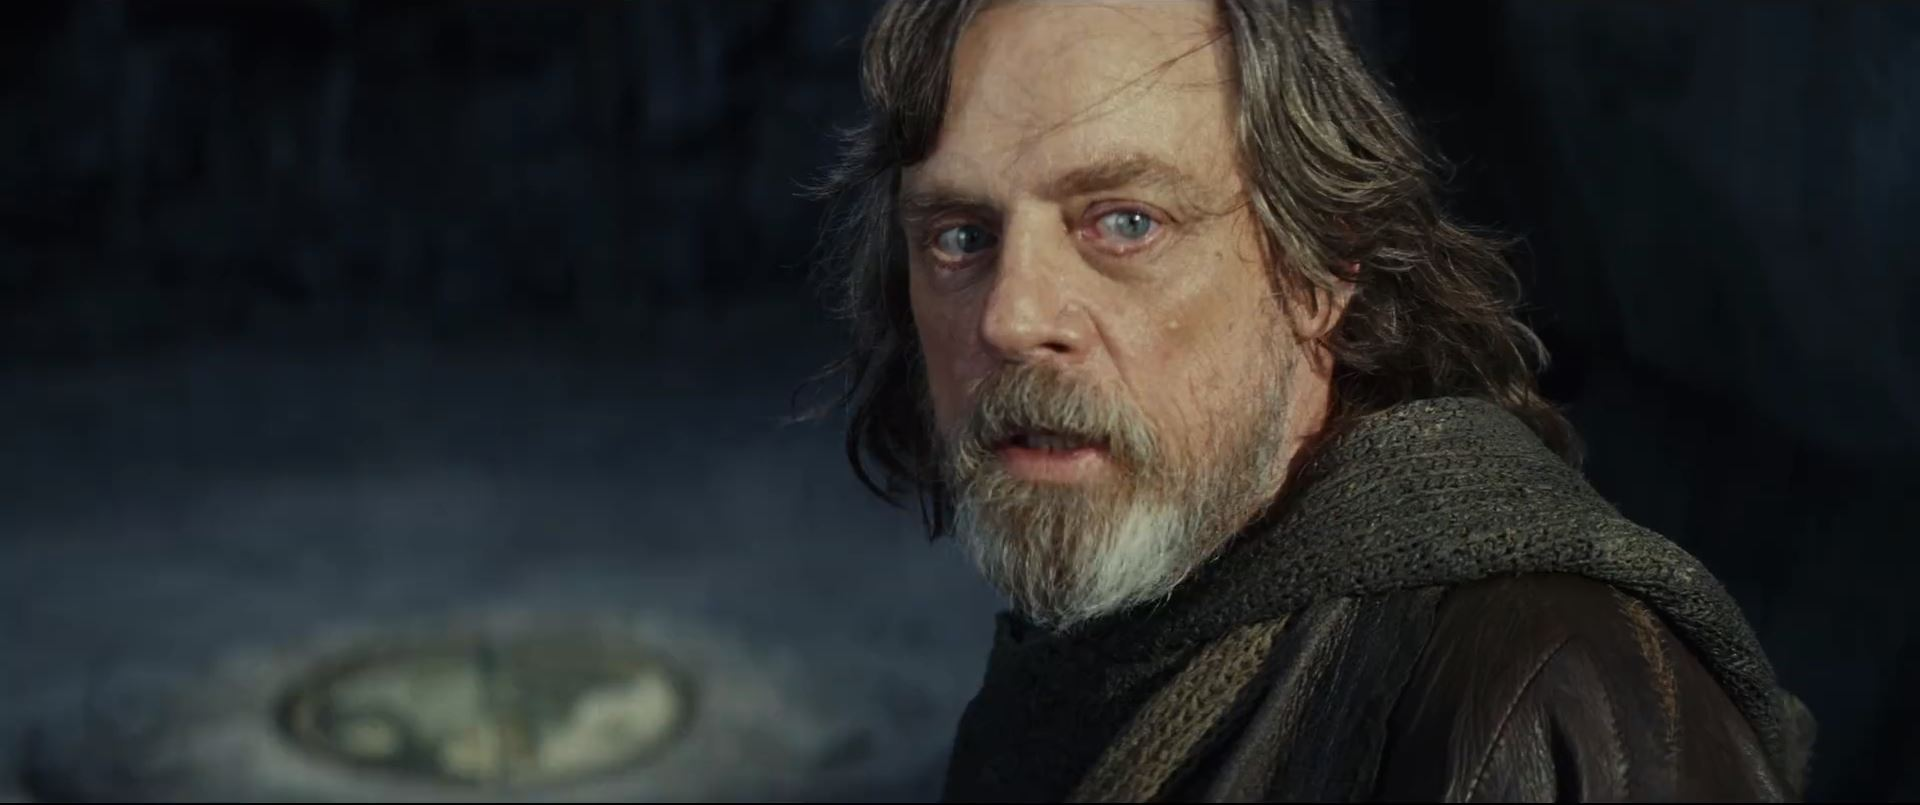 The Last Jedi Trailer - Mark Hamill as Jedi Master Luke Skywalker